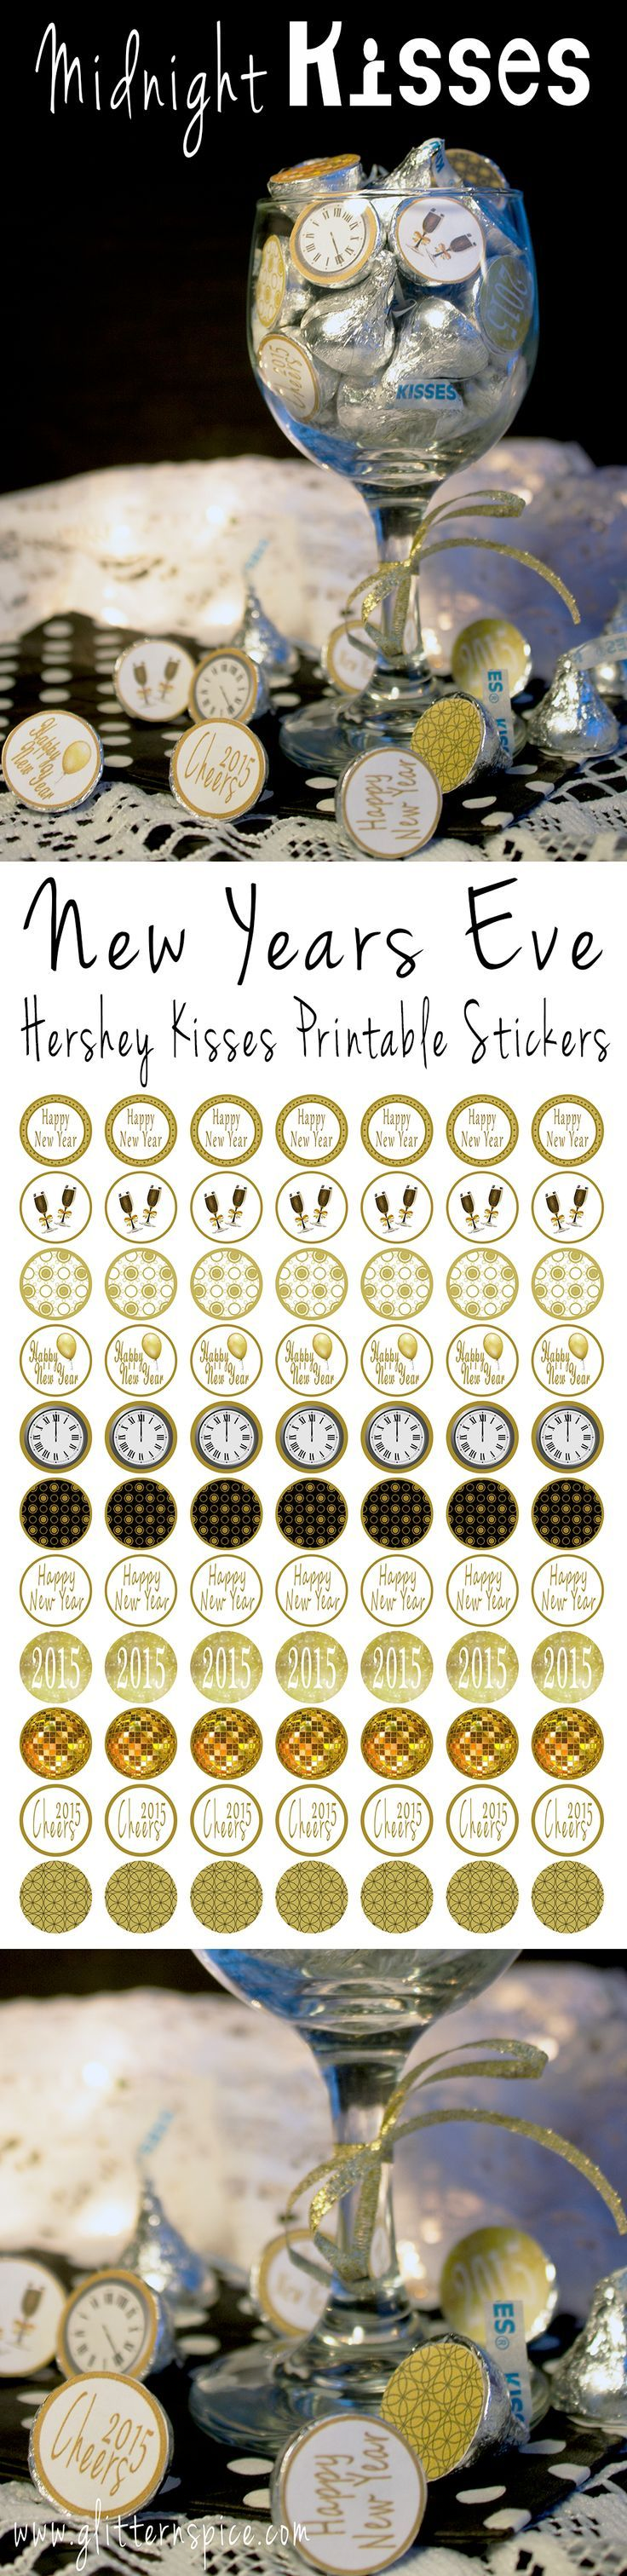 FREE printable New Year's Eve Hershey Kisses labels!